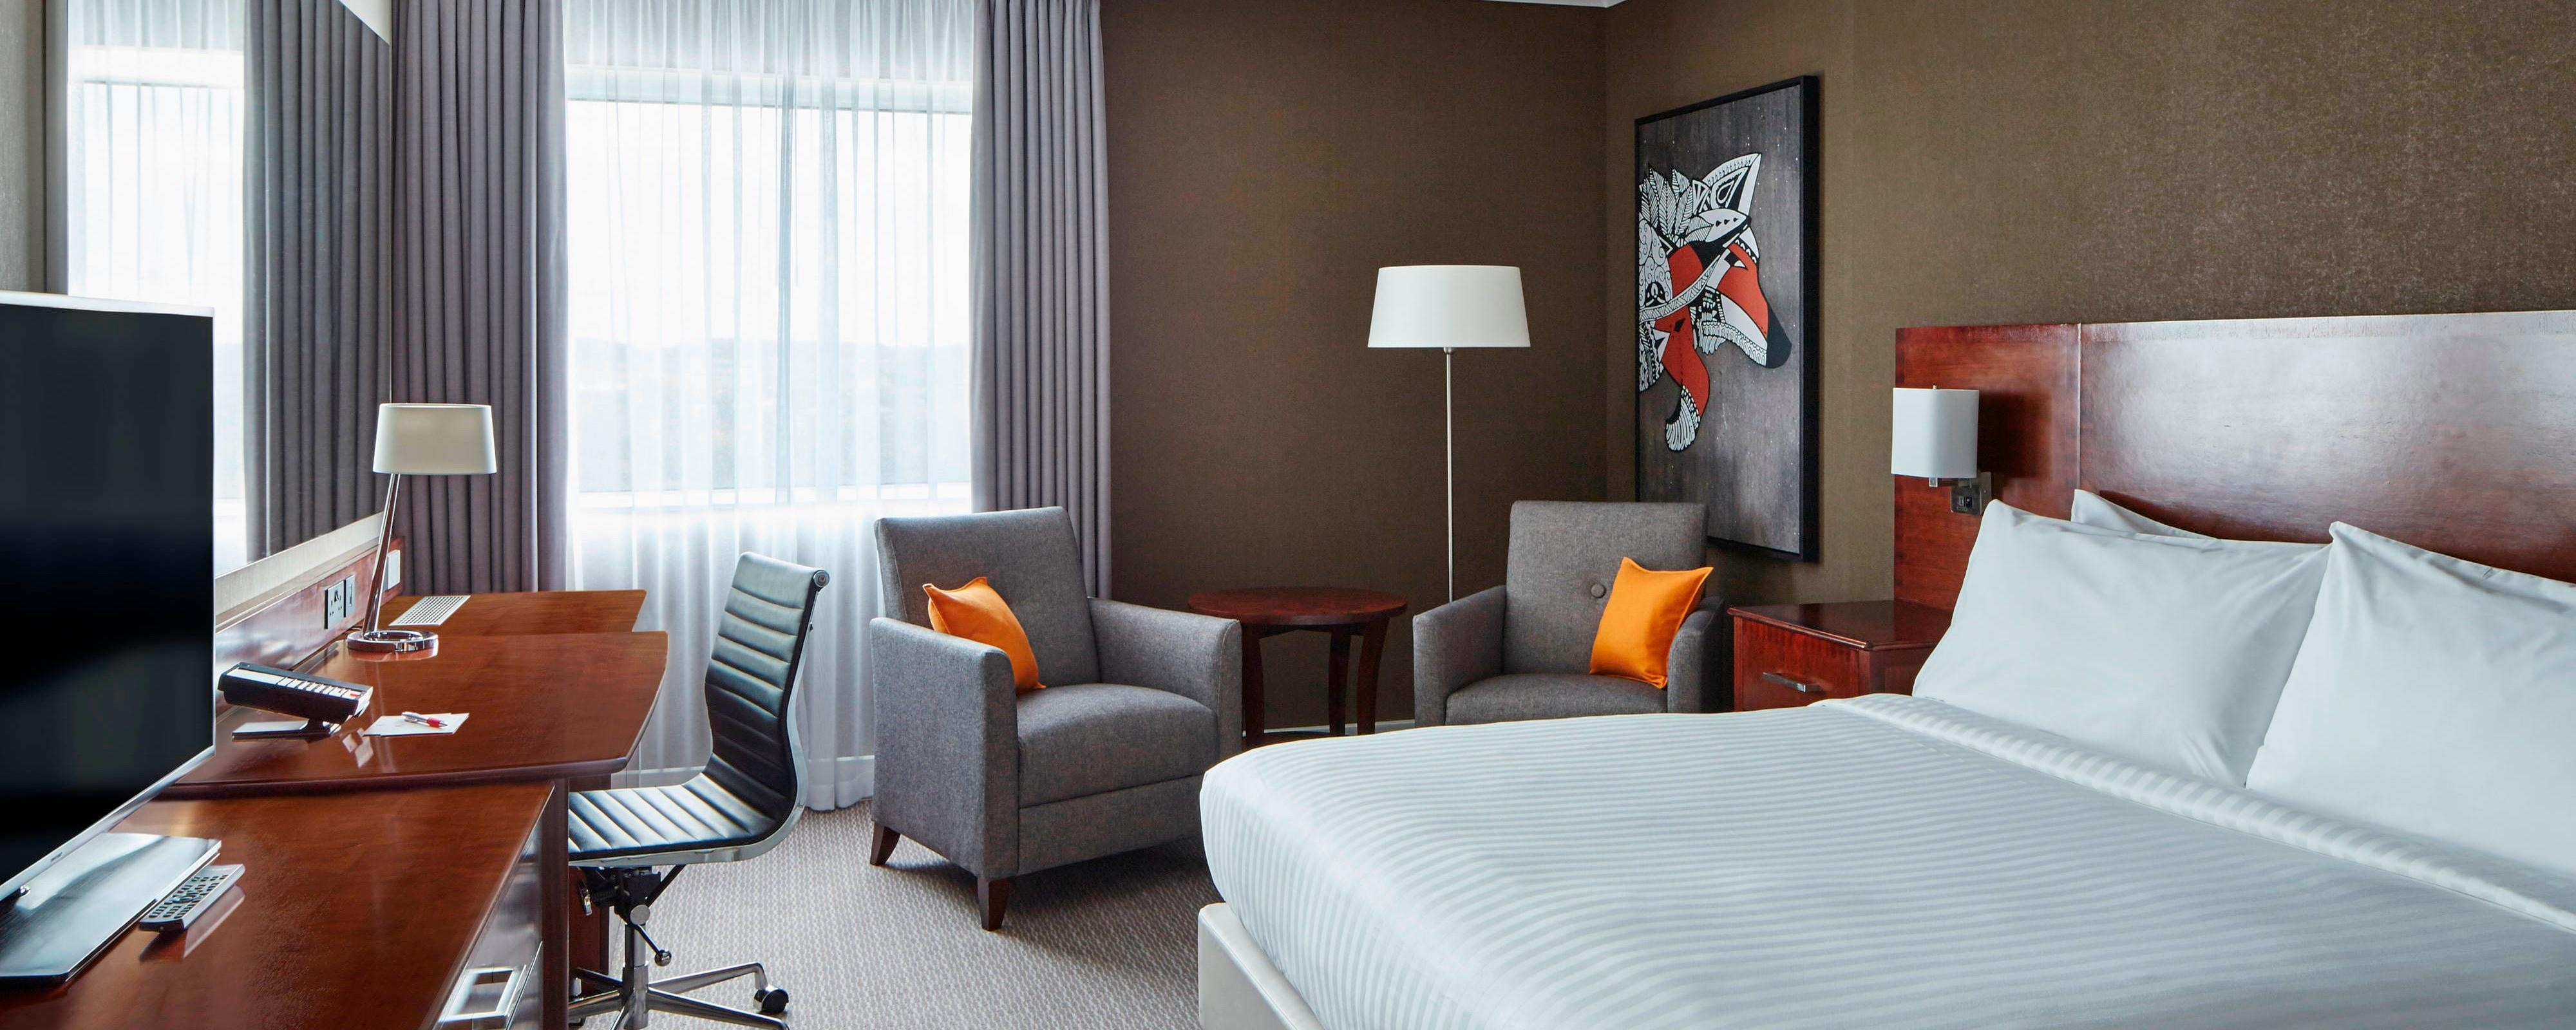 Marriott Traveler Blog 4 Star Hotel In Enderby Leicester England Leicester